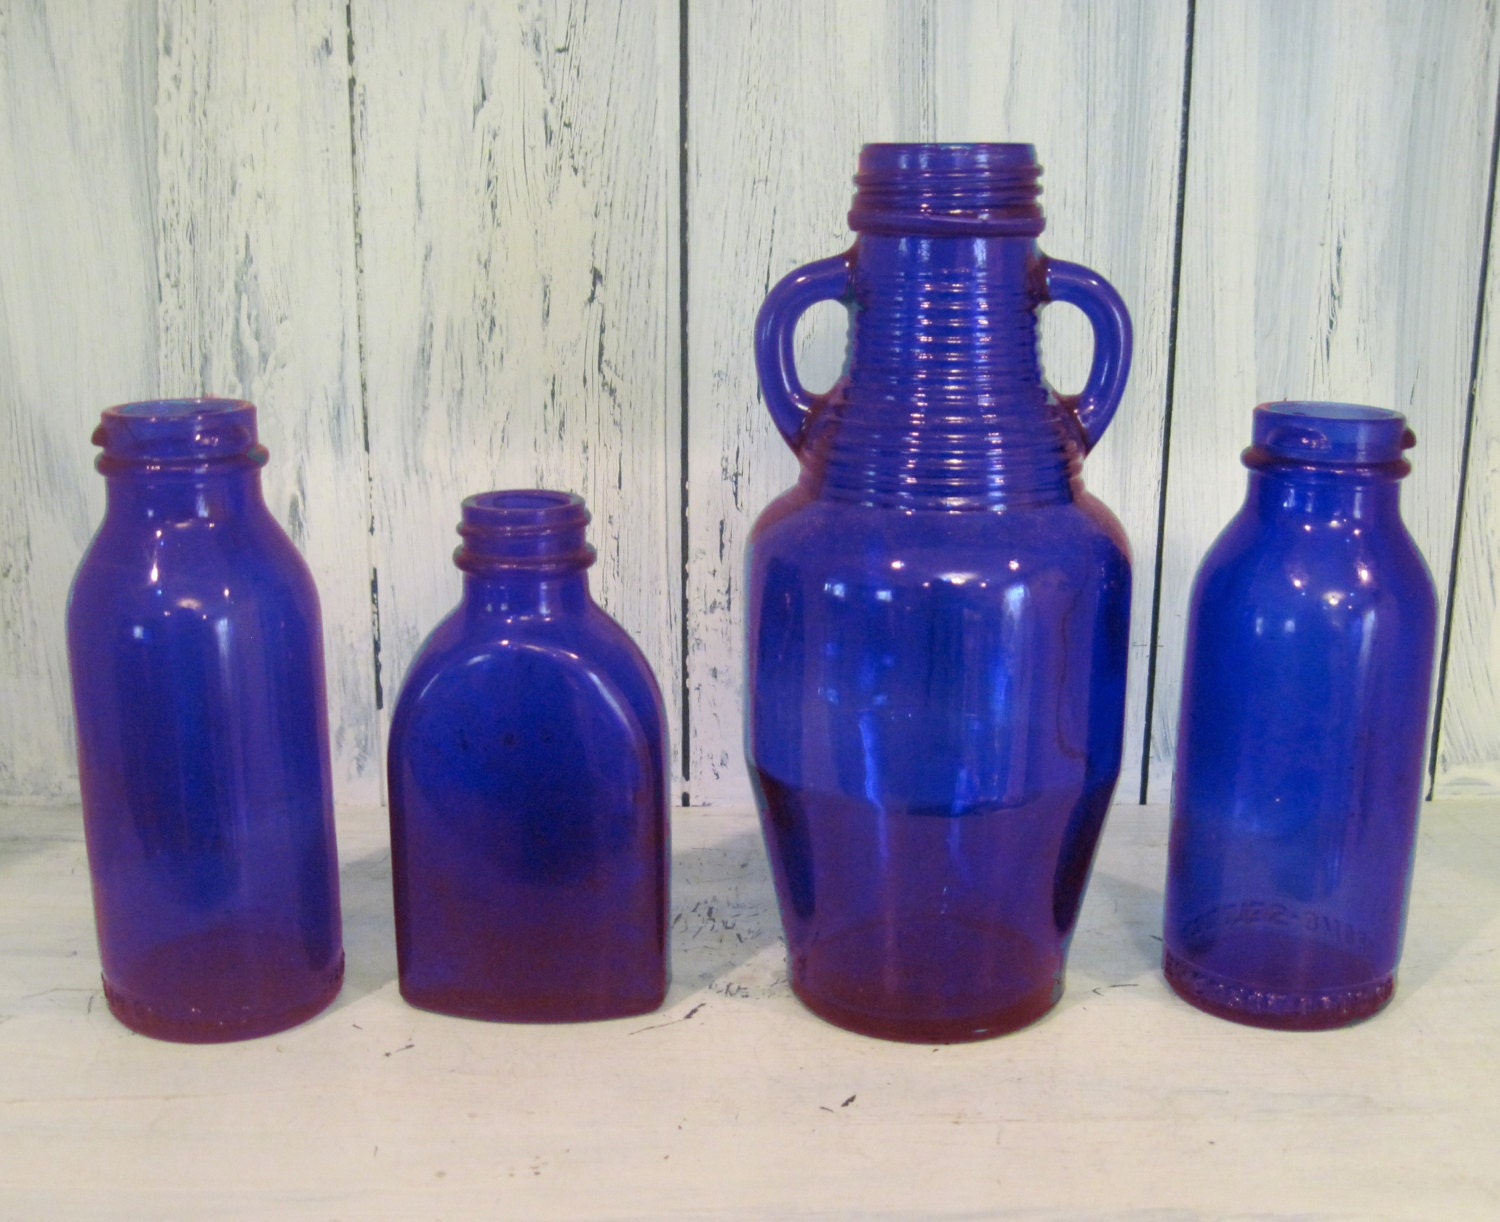 vintage decorative colored glass bottle set of 4 dark blue